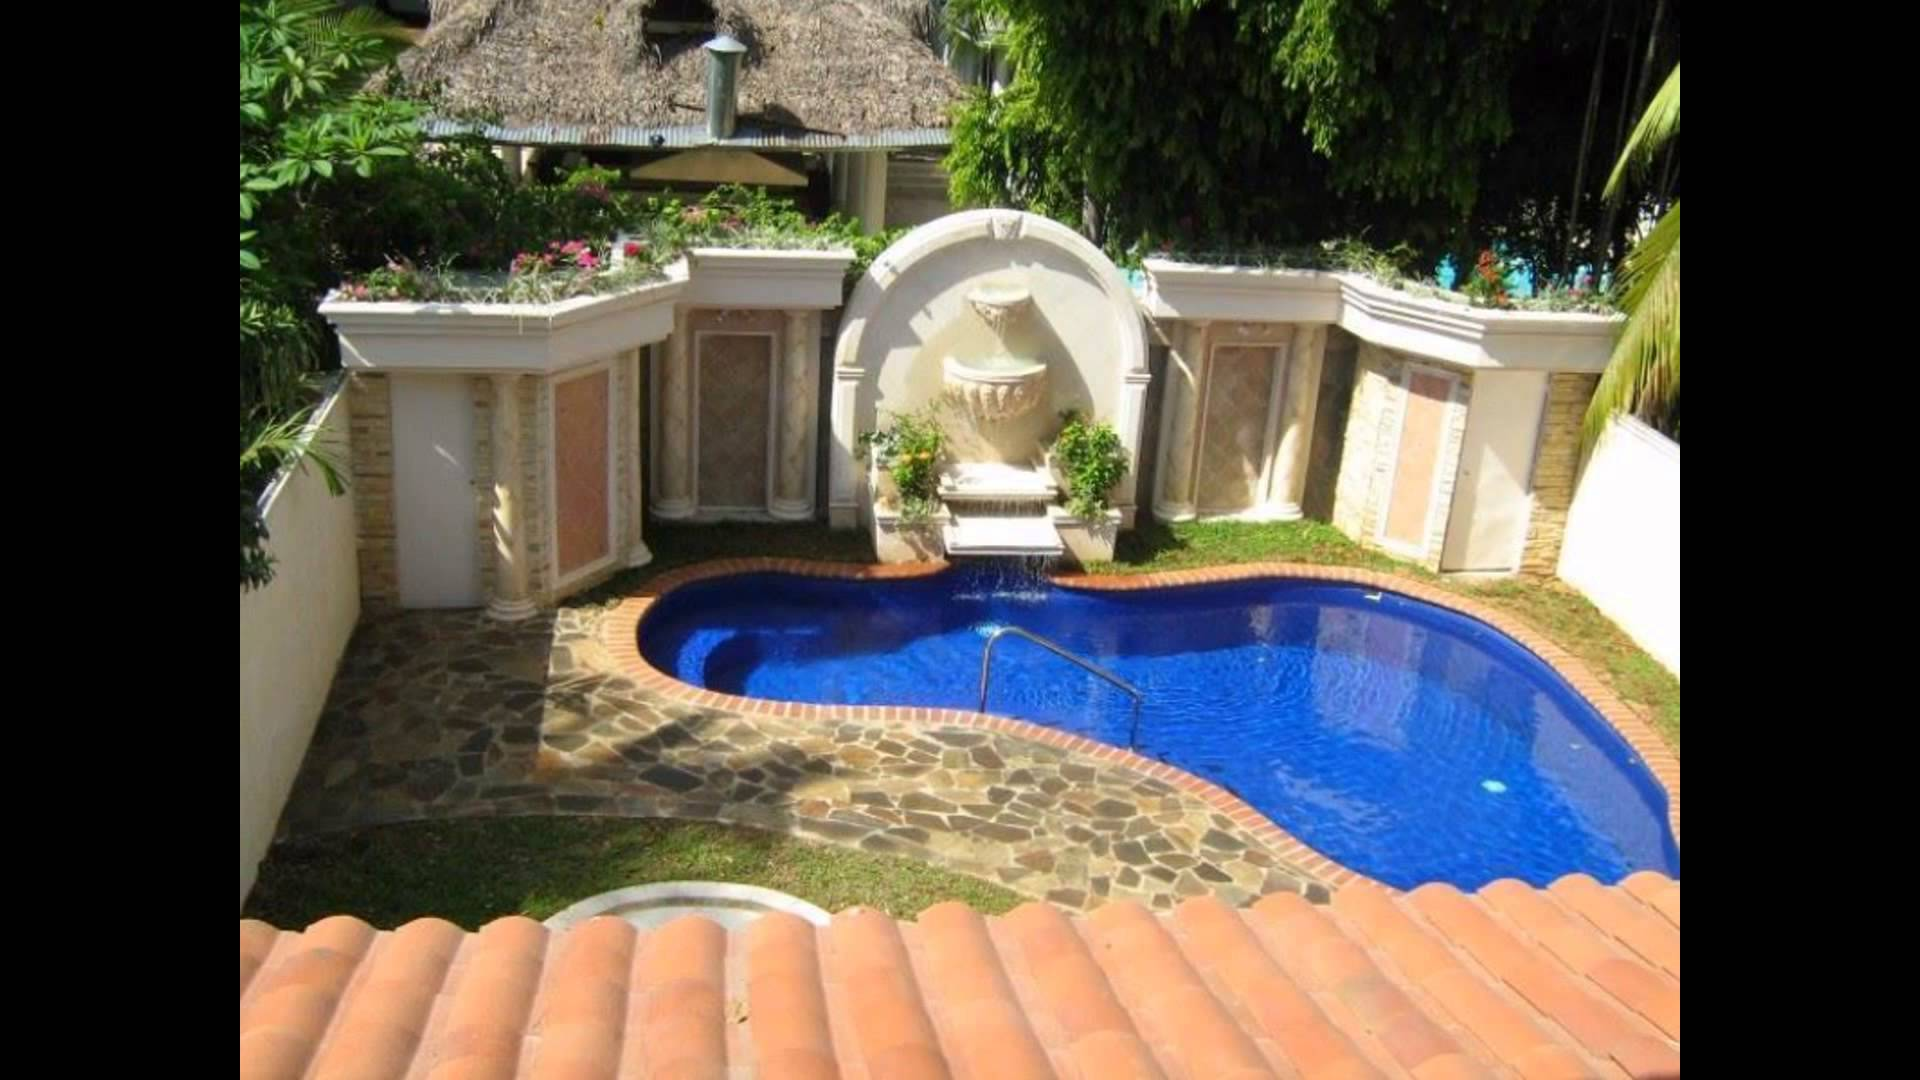 Cool Backyard Pool Designs for Your Outdoor Space: Cost Of Infinity Pool | How To Build An Inground Pool | Backyard Pool Designs